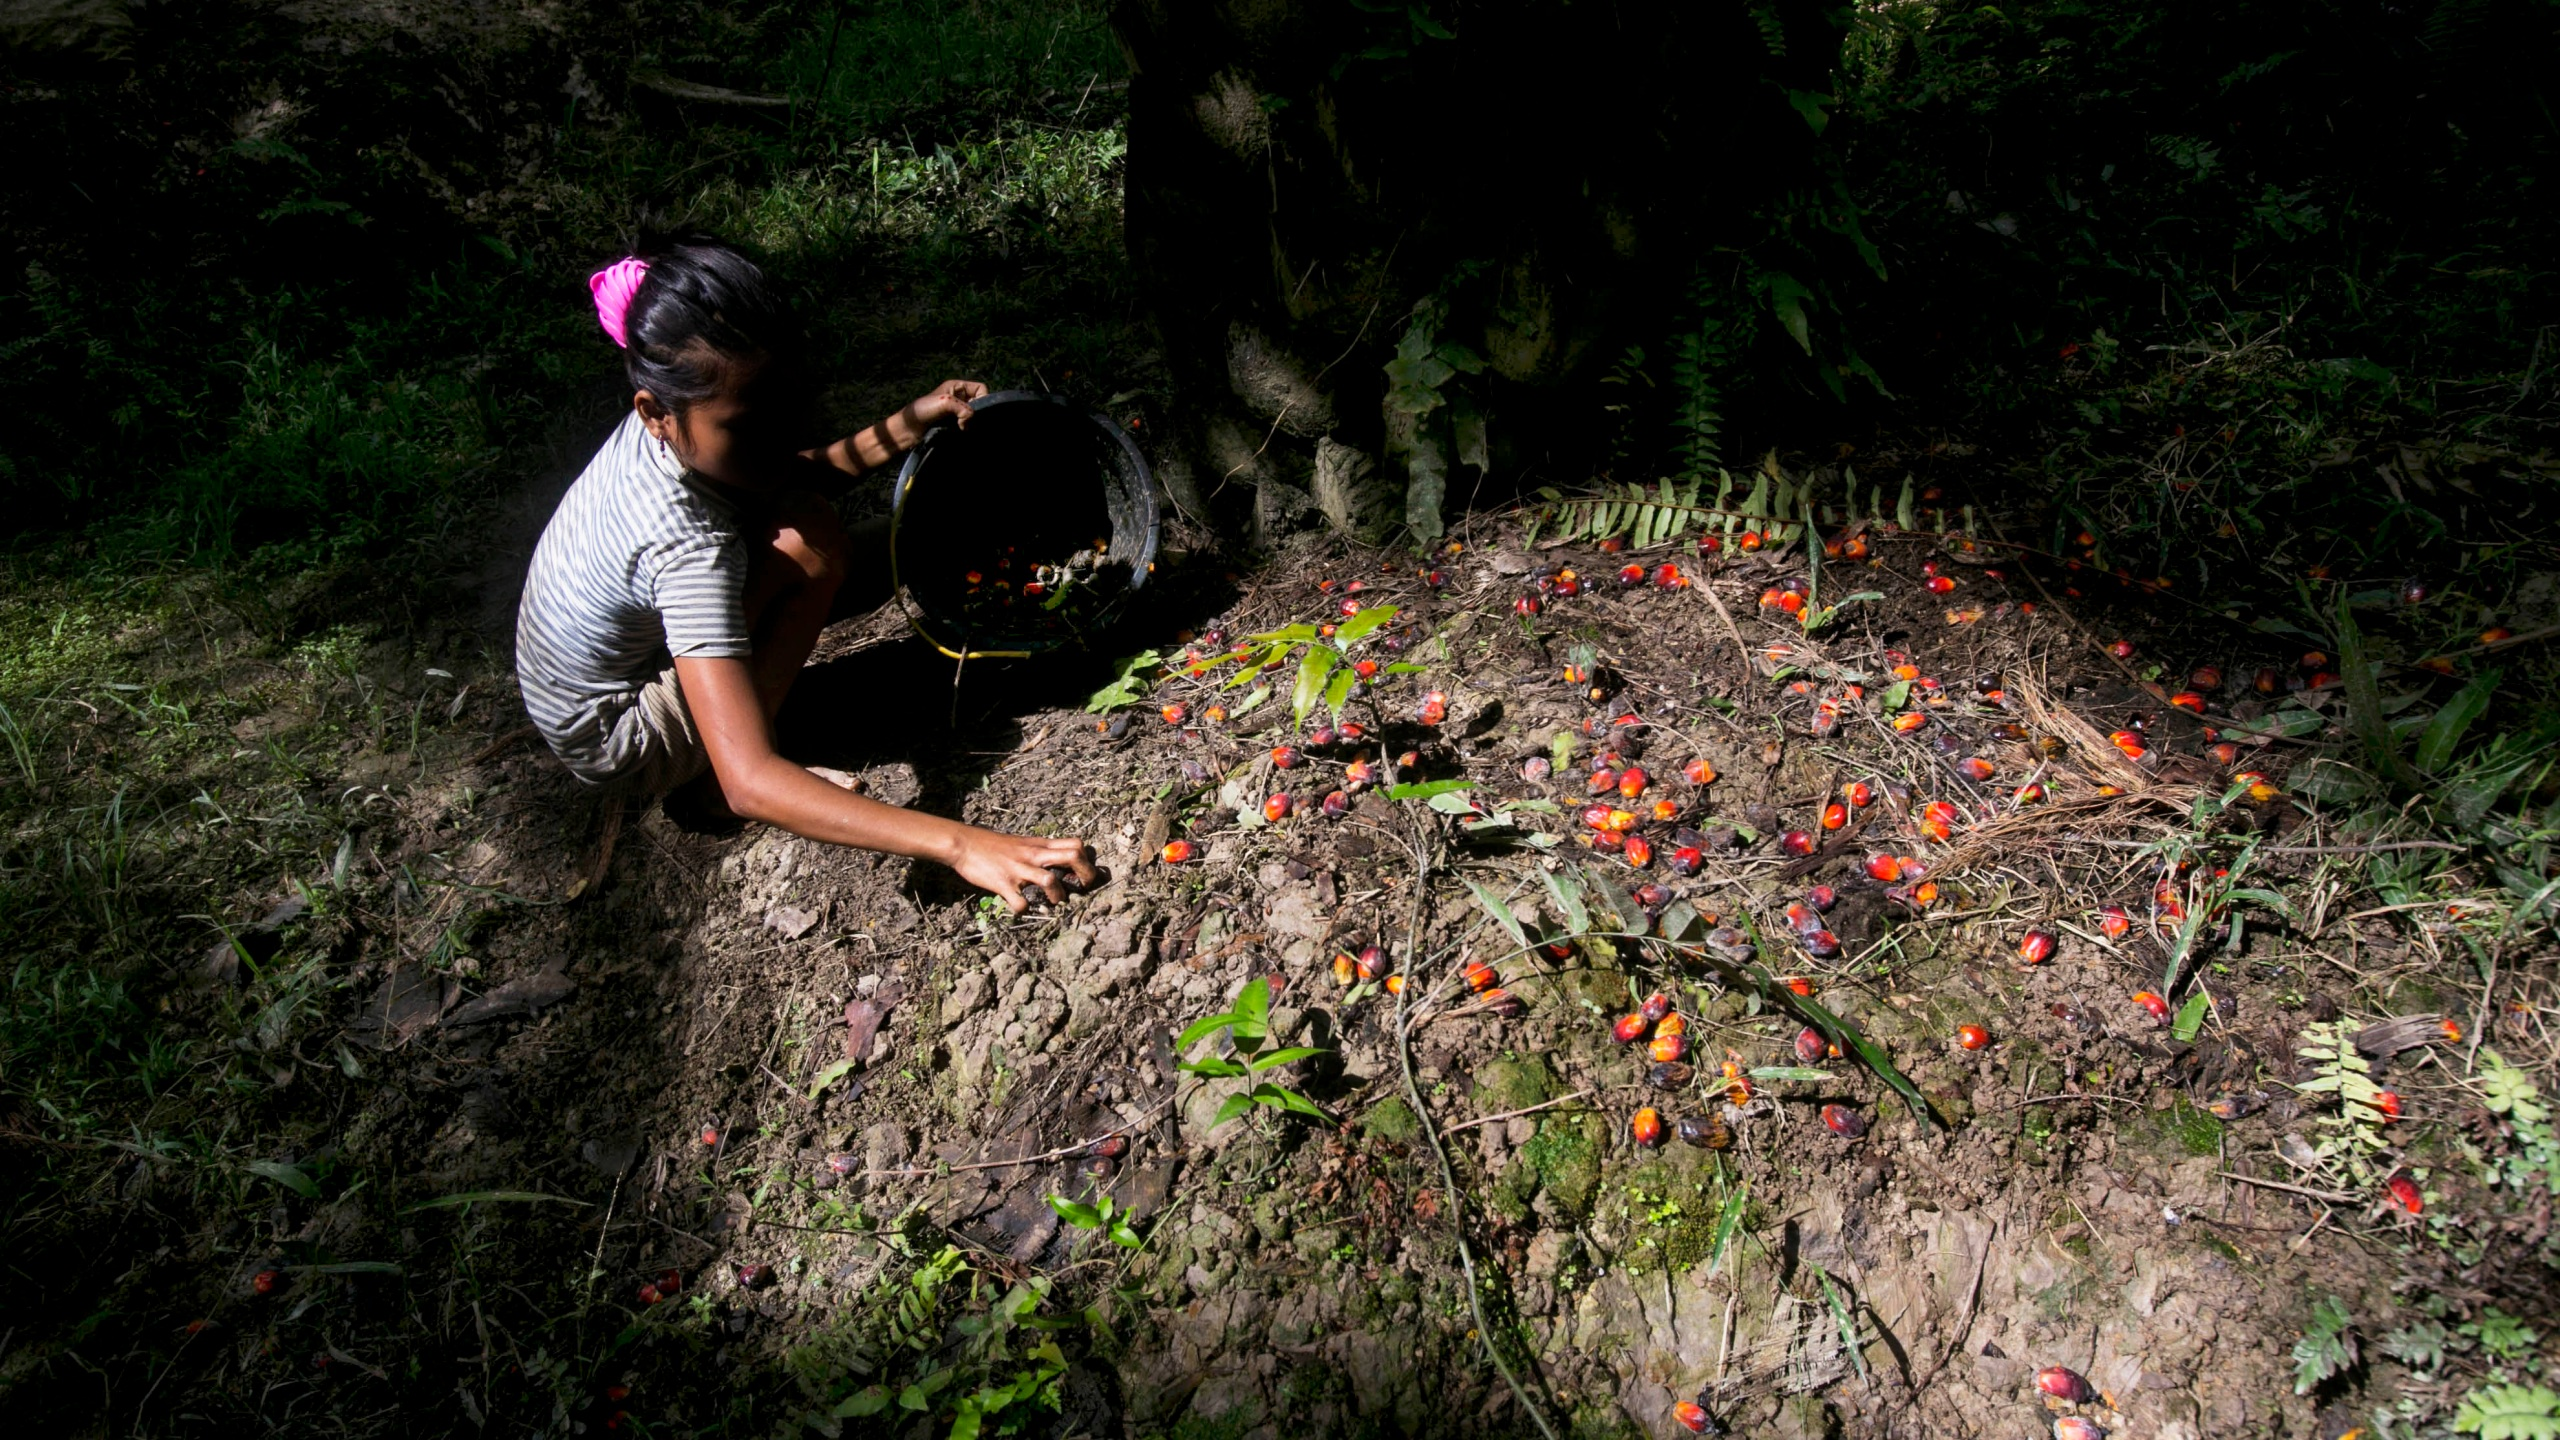 A child collects palm kernels from the ground at a palm oil plantation in Sumatra, Indonesia, on Nov. 13, 2017. (Binsar Bakkara / Associated Press)